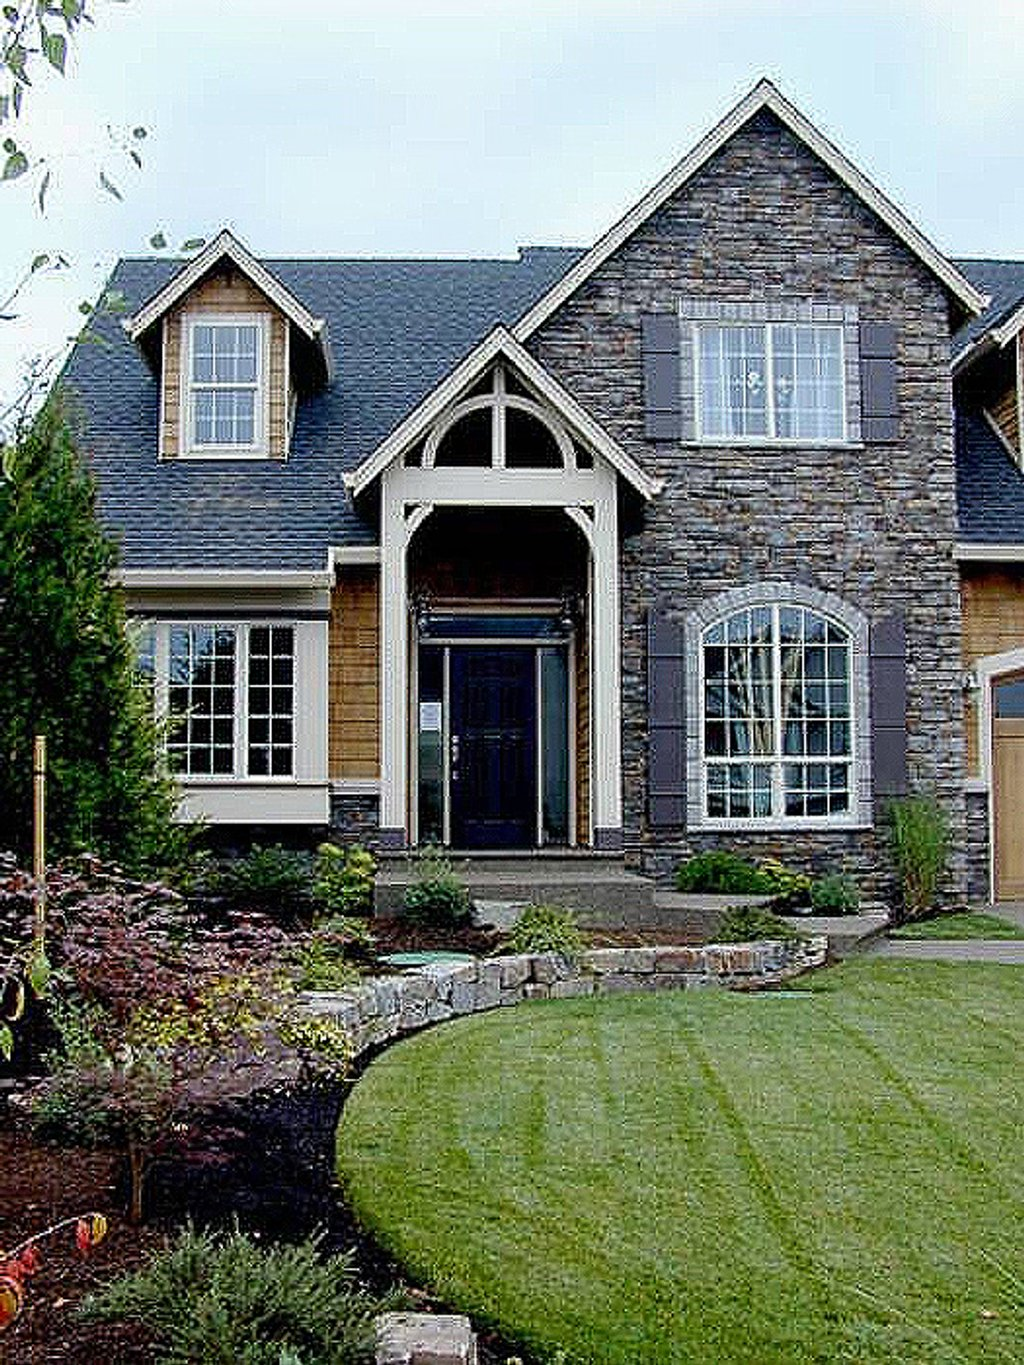 Craftsman style house plan 4 beds 2 5 baths 2196 sq ft for Craftsman style homes for sale in maryland